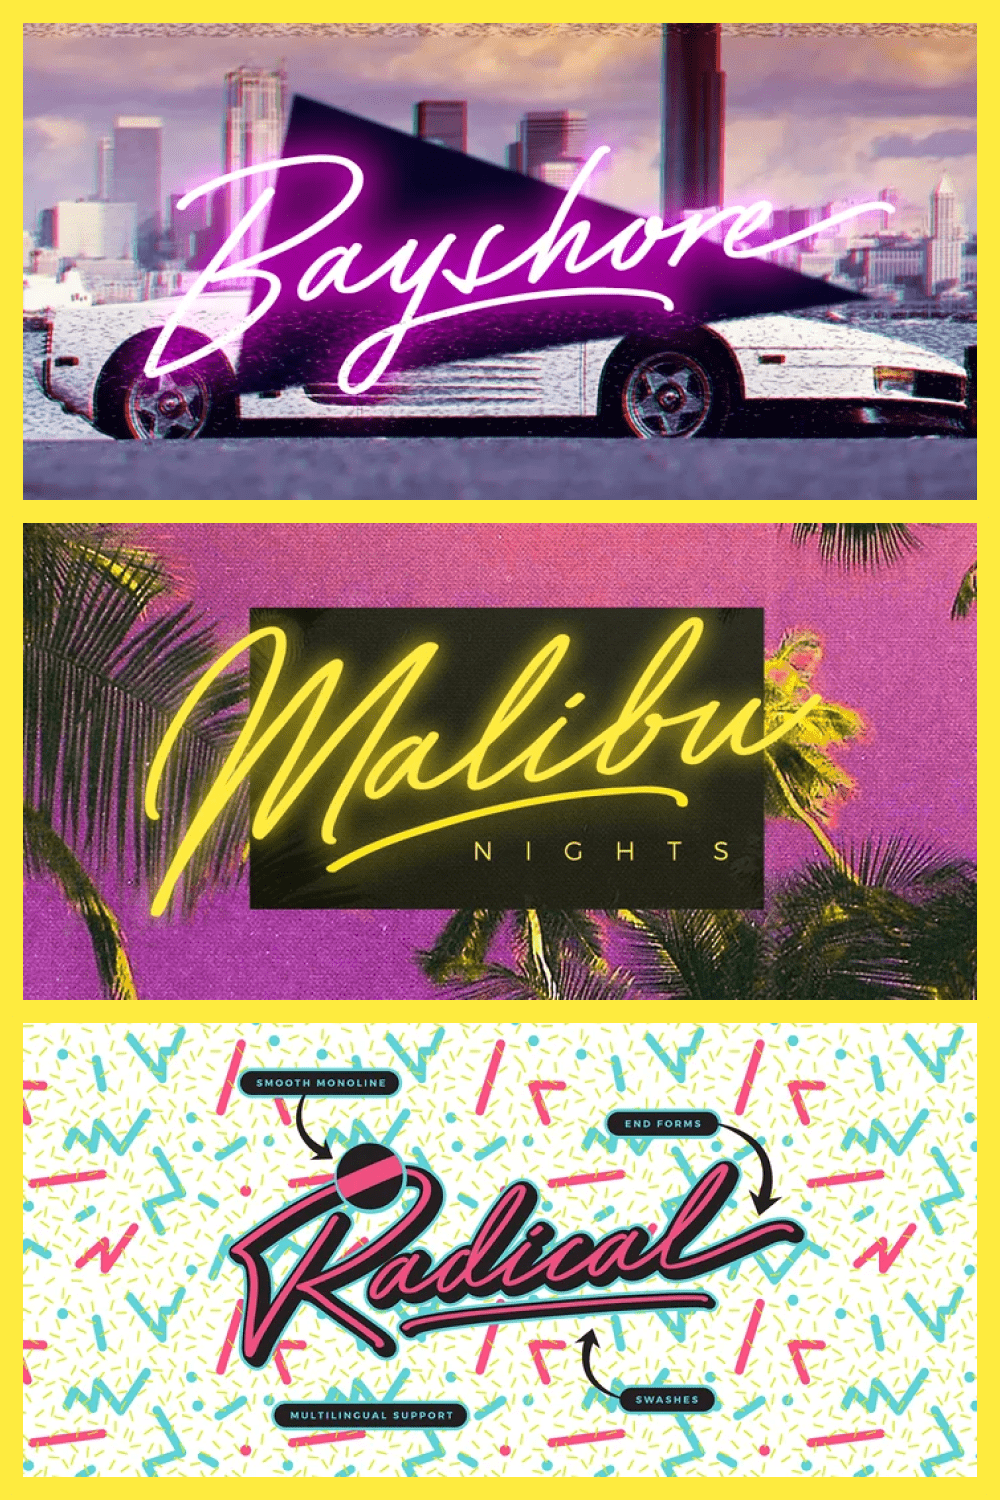 Font in neon and italics.